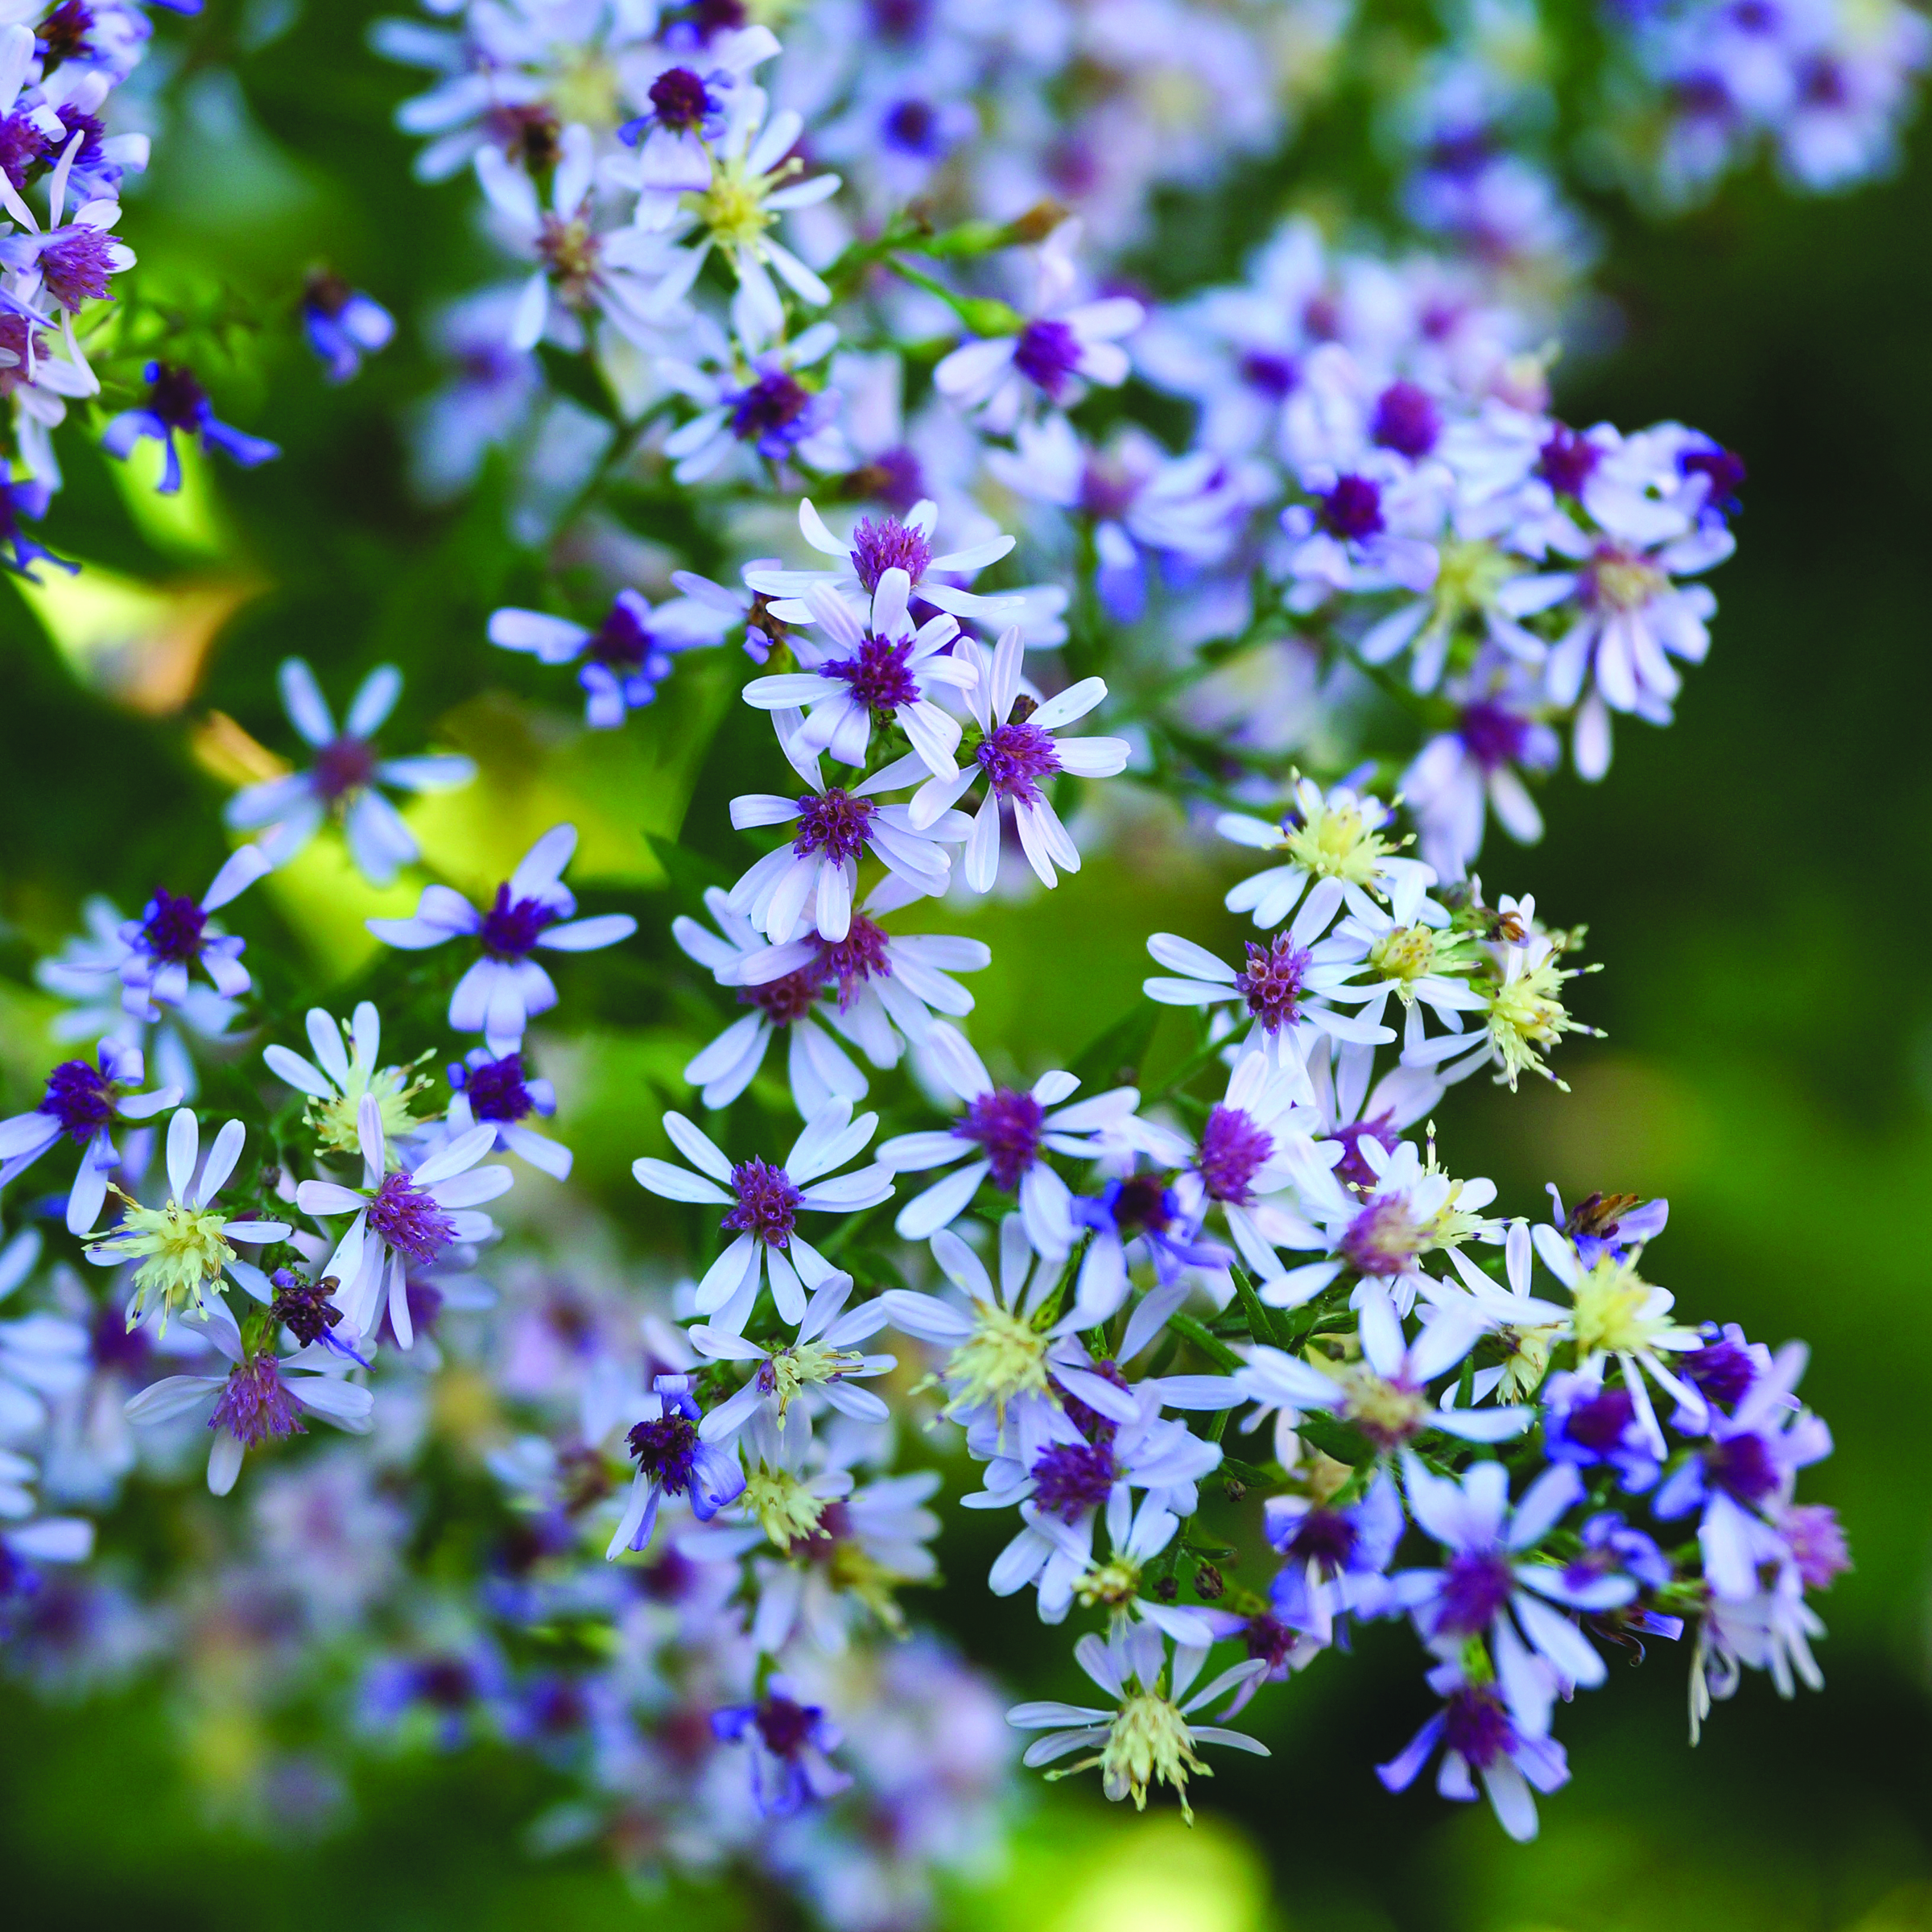 Blue wood aster is an adaptable fall blooming perennial for tough urban conditions and shady woodland edges.